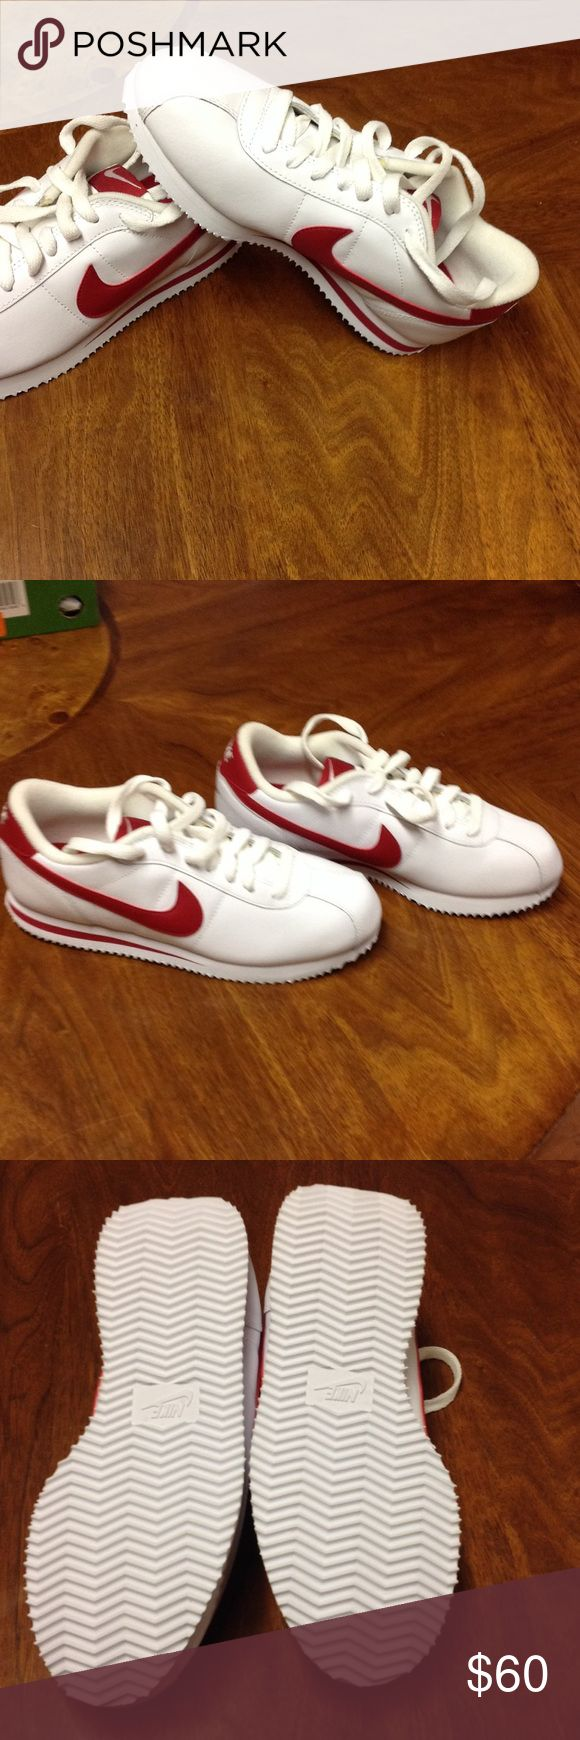 5Y or 6.5 women or 5 in men. Nike Cortez red Super hard to find shoes. Nike Cortez, leather red never been worn before, no tags, but new. Offers are welcome Nike Shoes Athletic Shoes